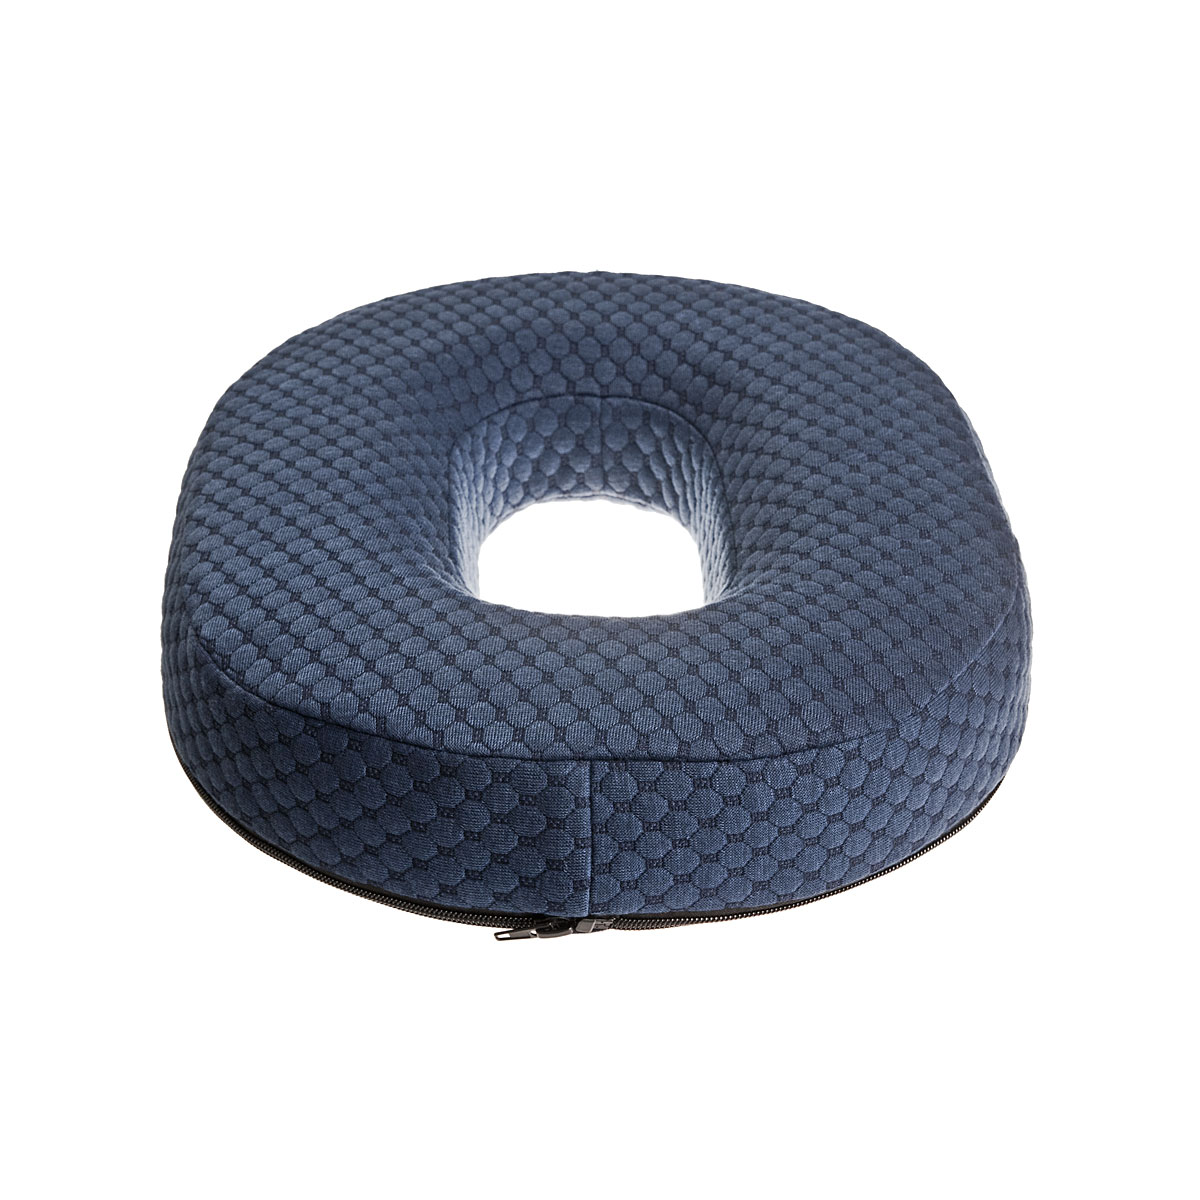 Ring Donut Cushion Soft Round Pillow